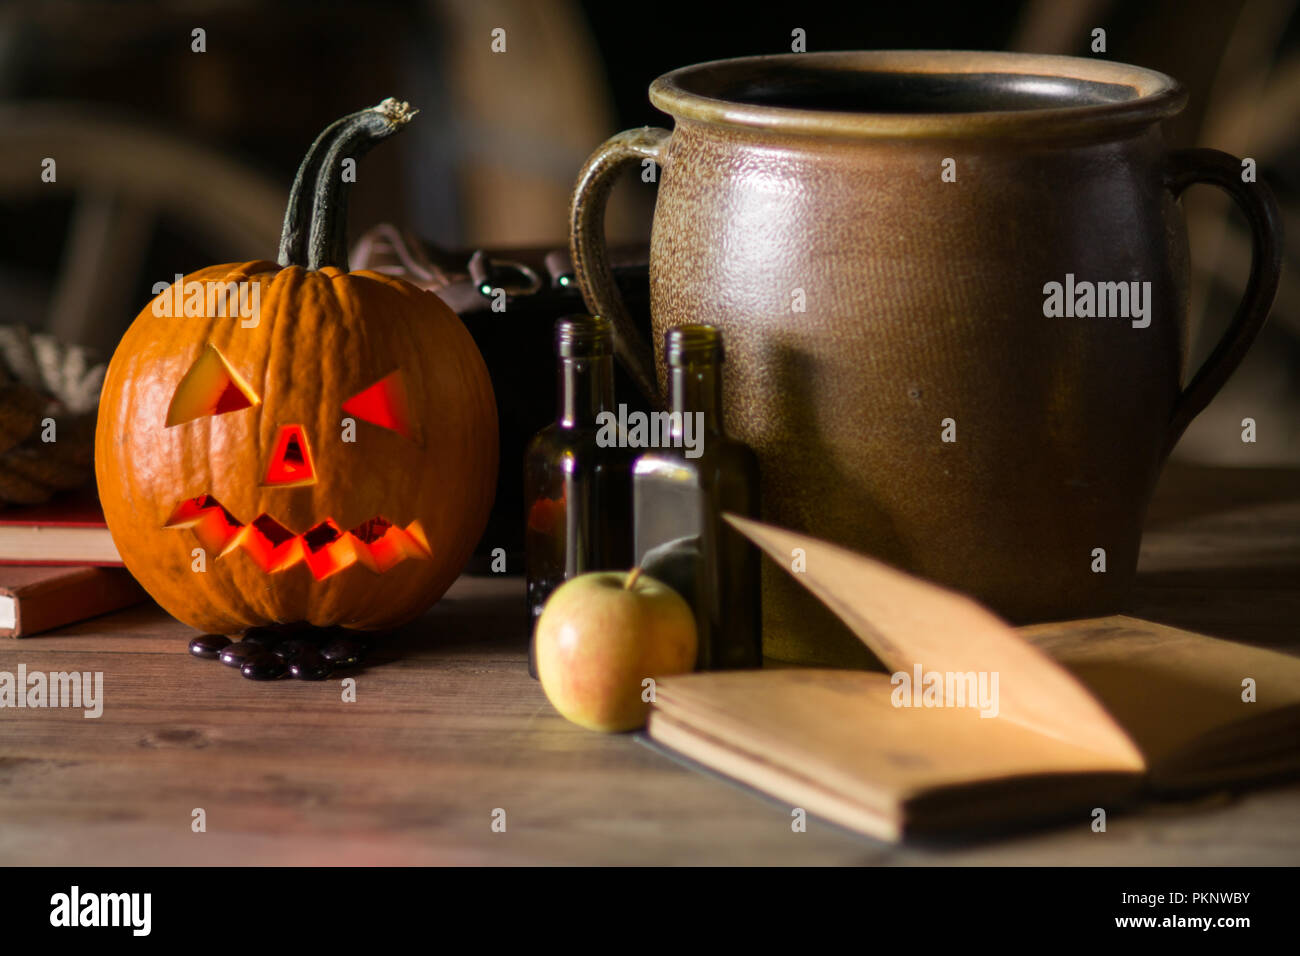 Remarkable Decorations On Halloween Celebration With Pumpkin Face Pot Download Free Architecture Designs Rallybritishbridgeorg